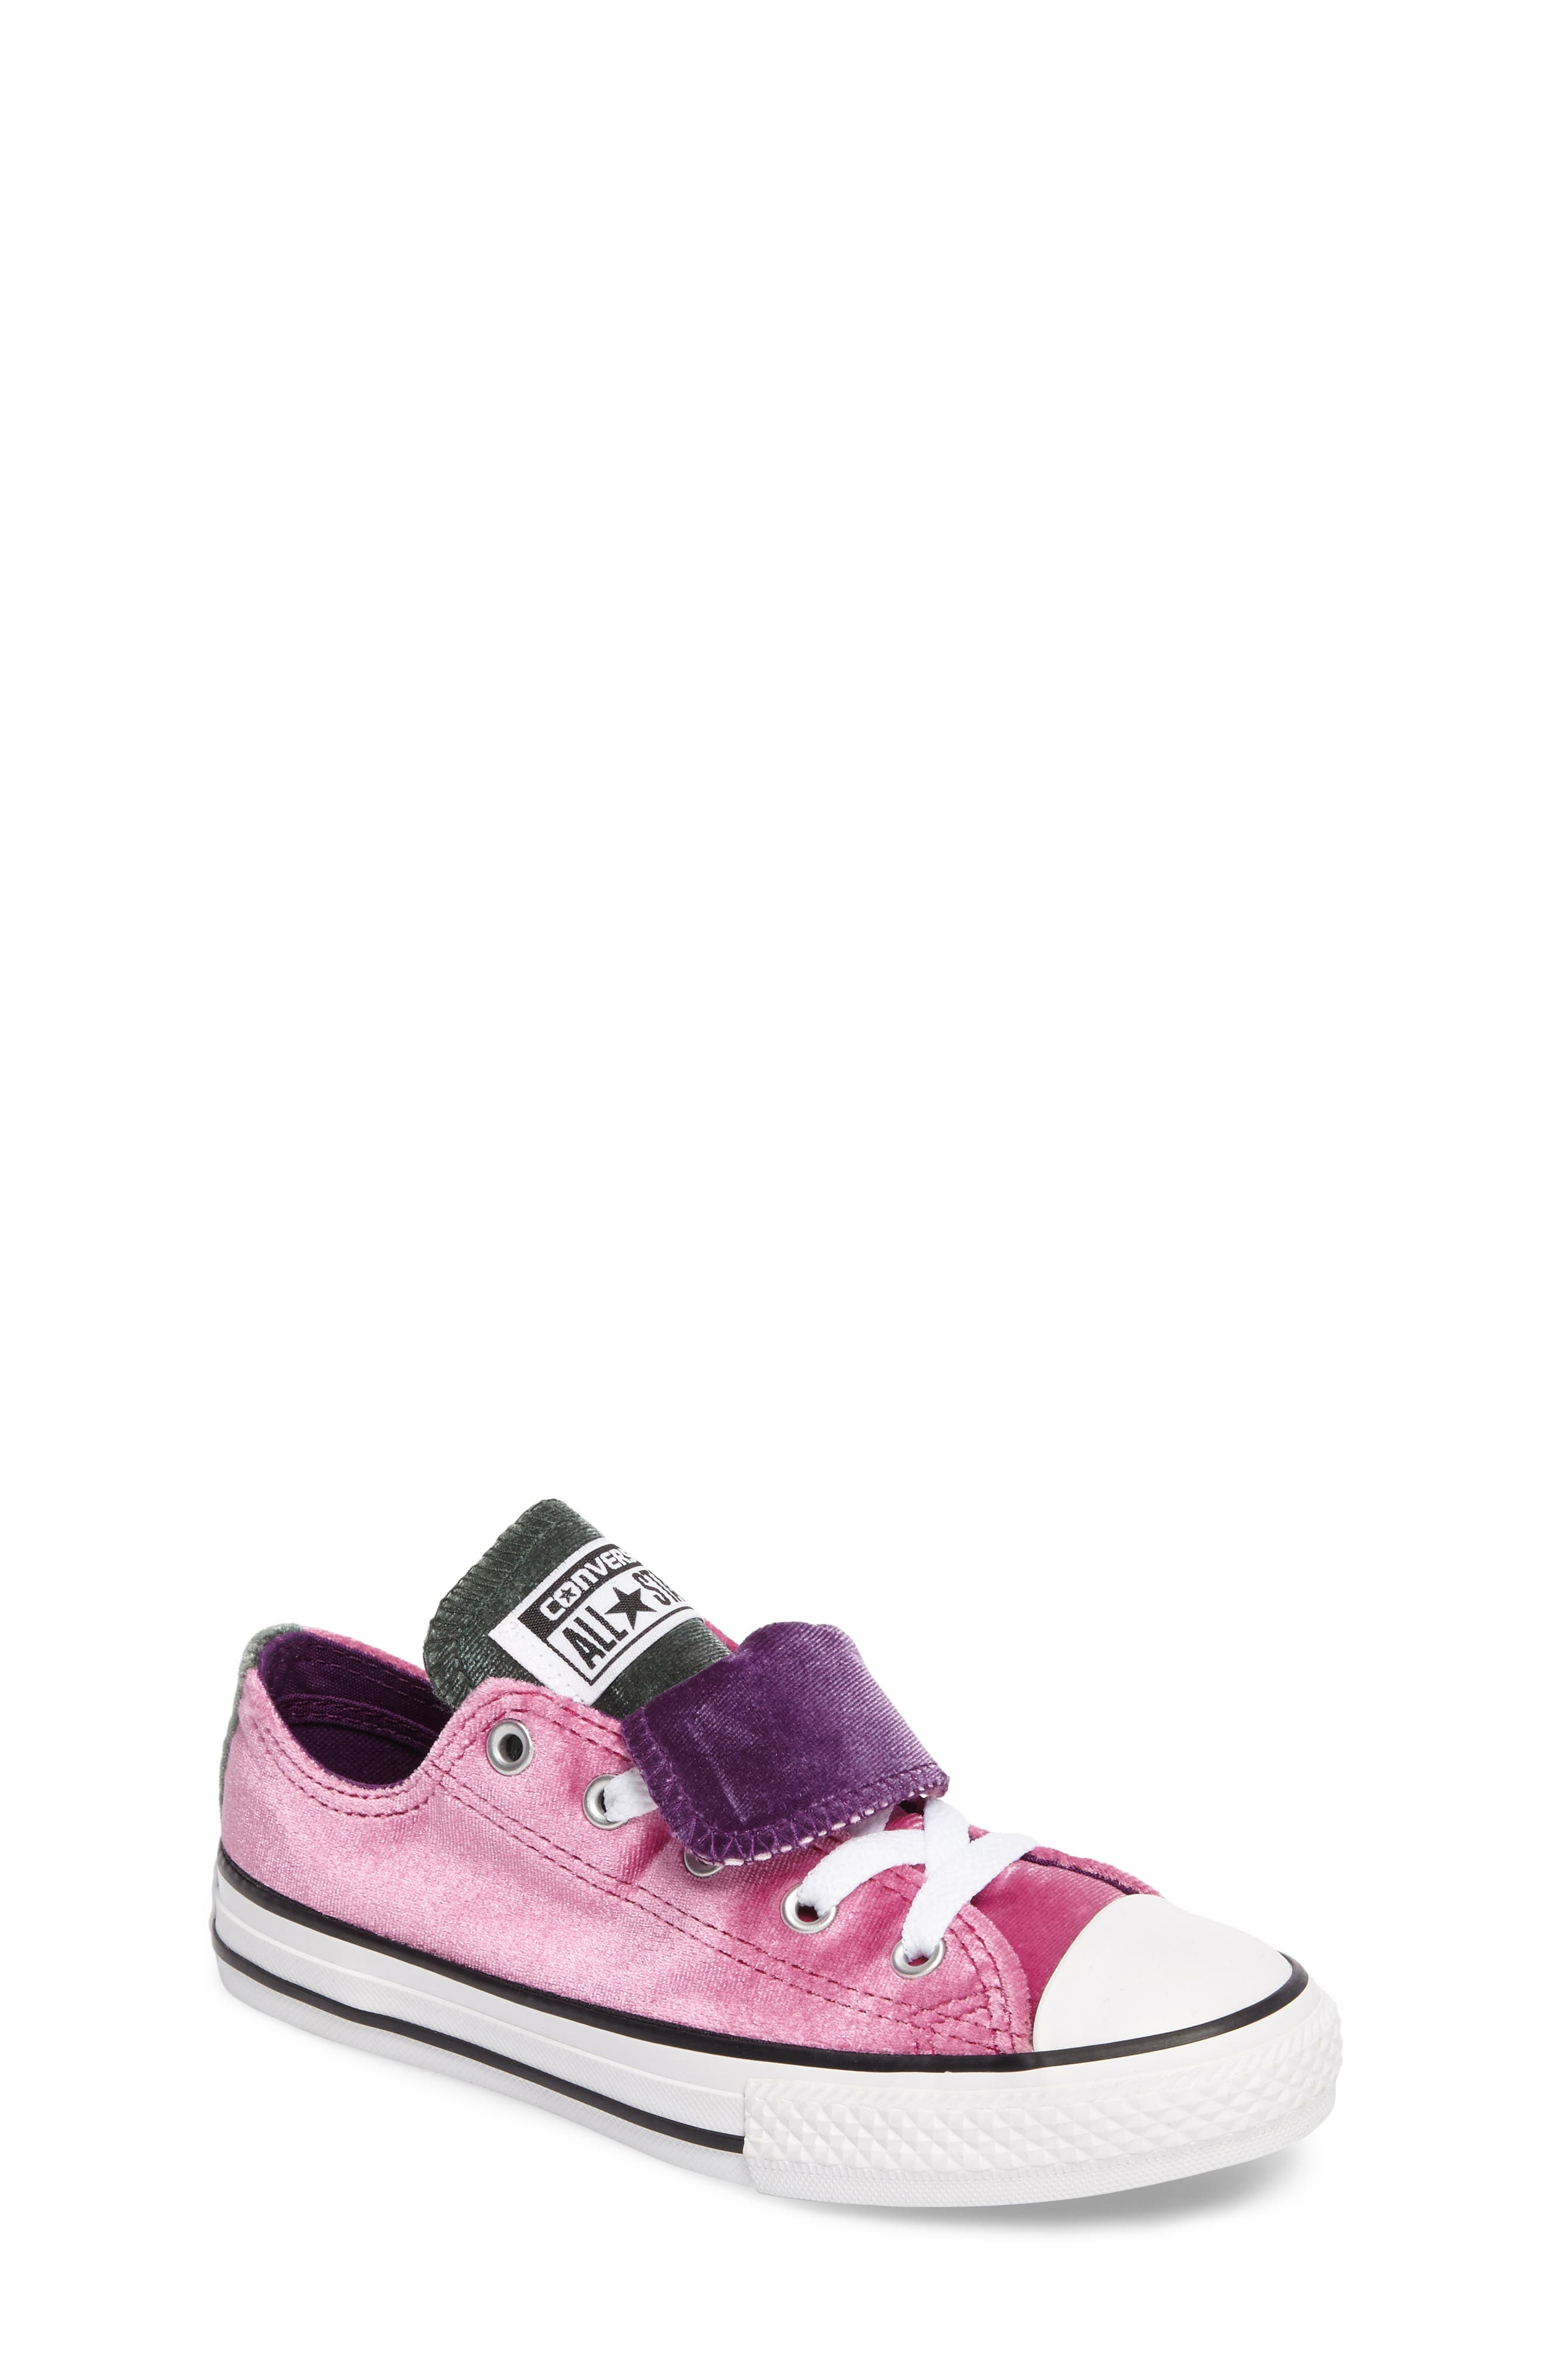 All Star<sup>®</sup> Velvet Double Tongue Sneaker,                             Main thumbnail 1, color,                             650